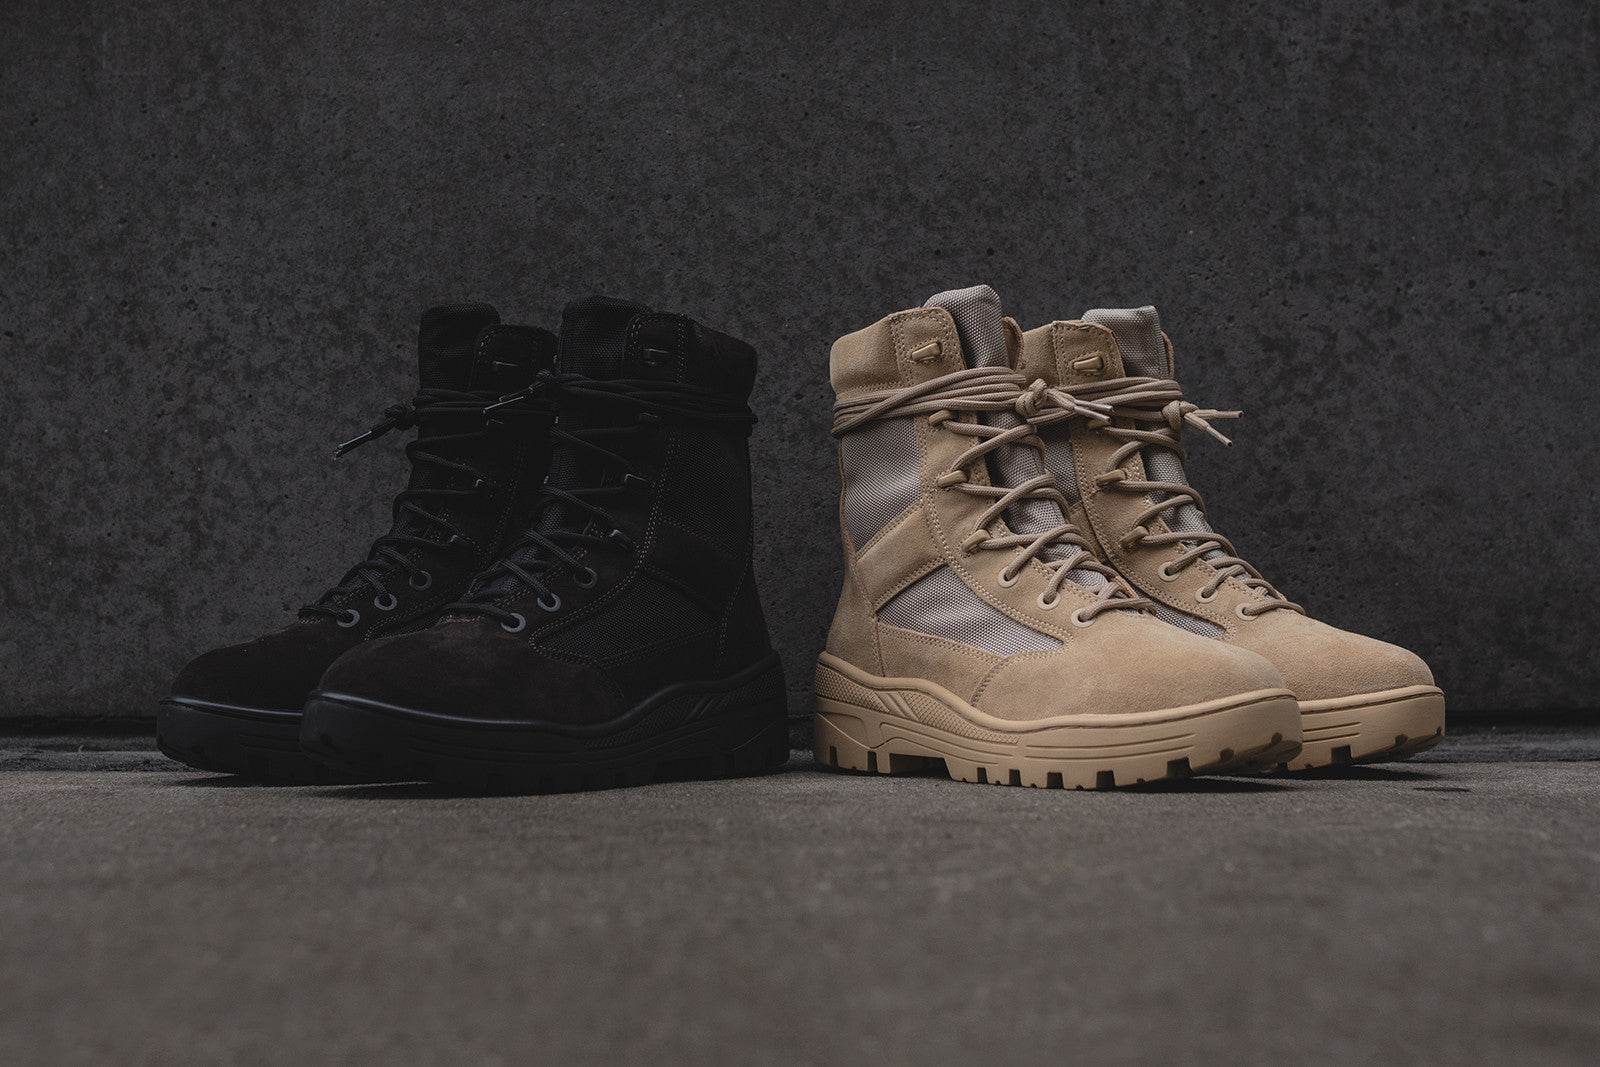 Yeezy Combat Boot Pack – Kith